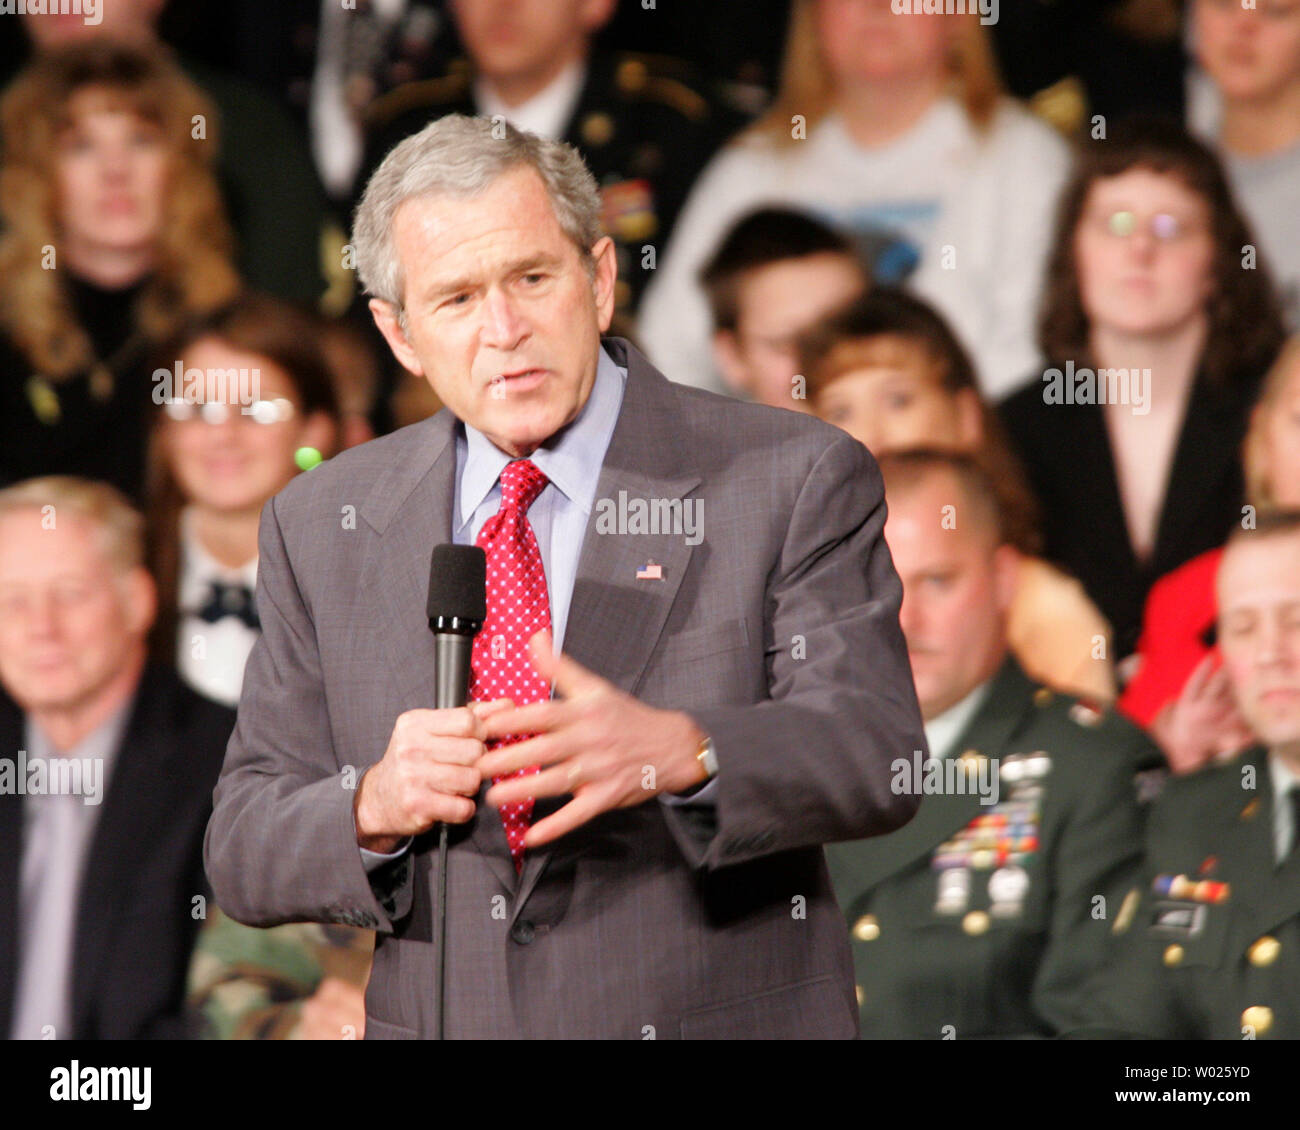 President Bush speaks about the War on Terror, at the Capitol Music Hall in Wheeling West Virginia on March 22, 2006. Bush said he feels Iraqi political figures need to construct a stable government in order to unify the country.  (UPI Photo/Stephen Gross) - Stock Image